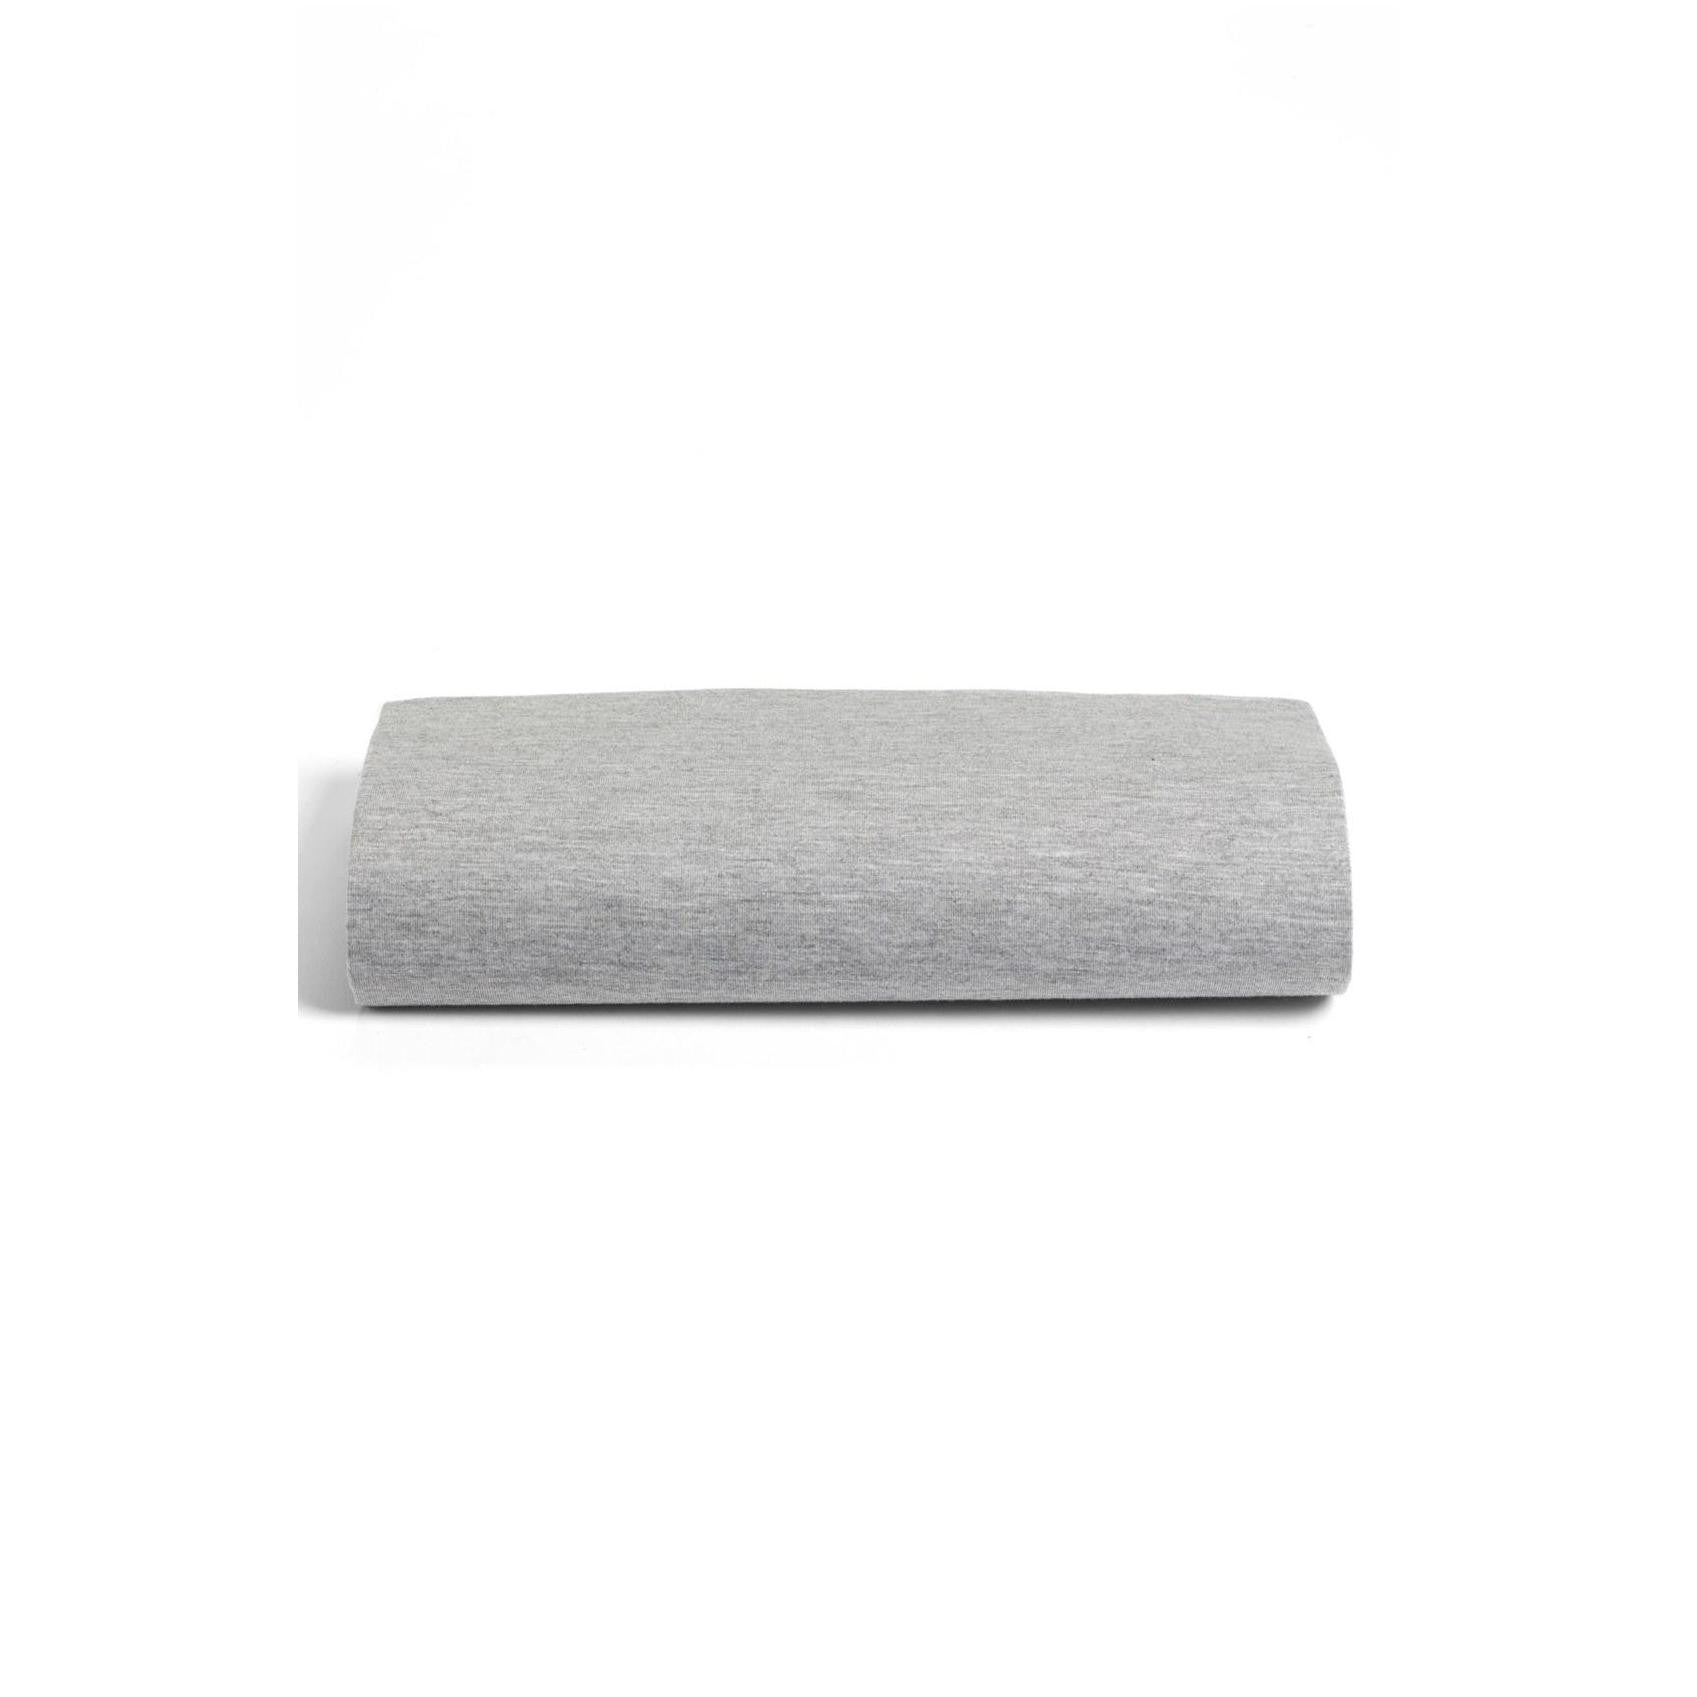 Nuna Sena Fitted Sheet